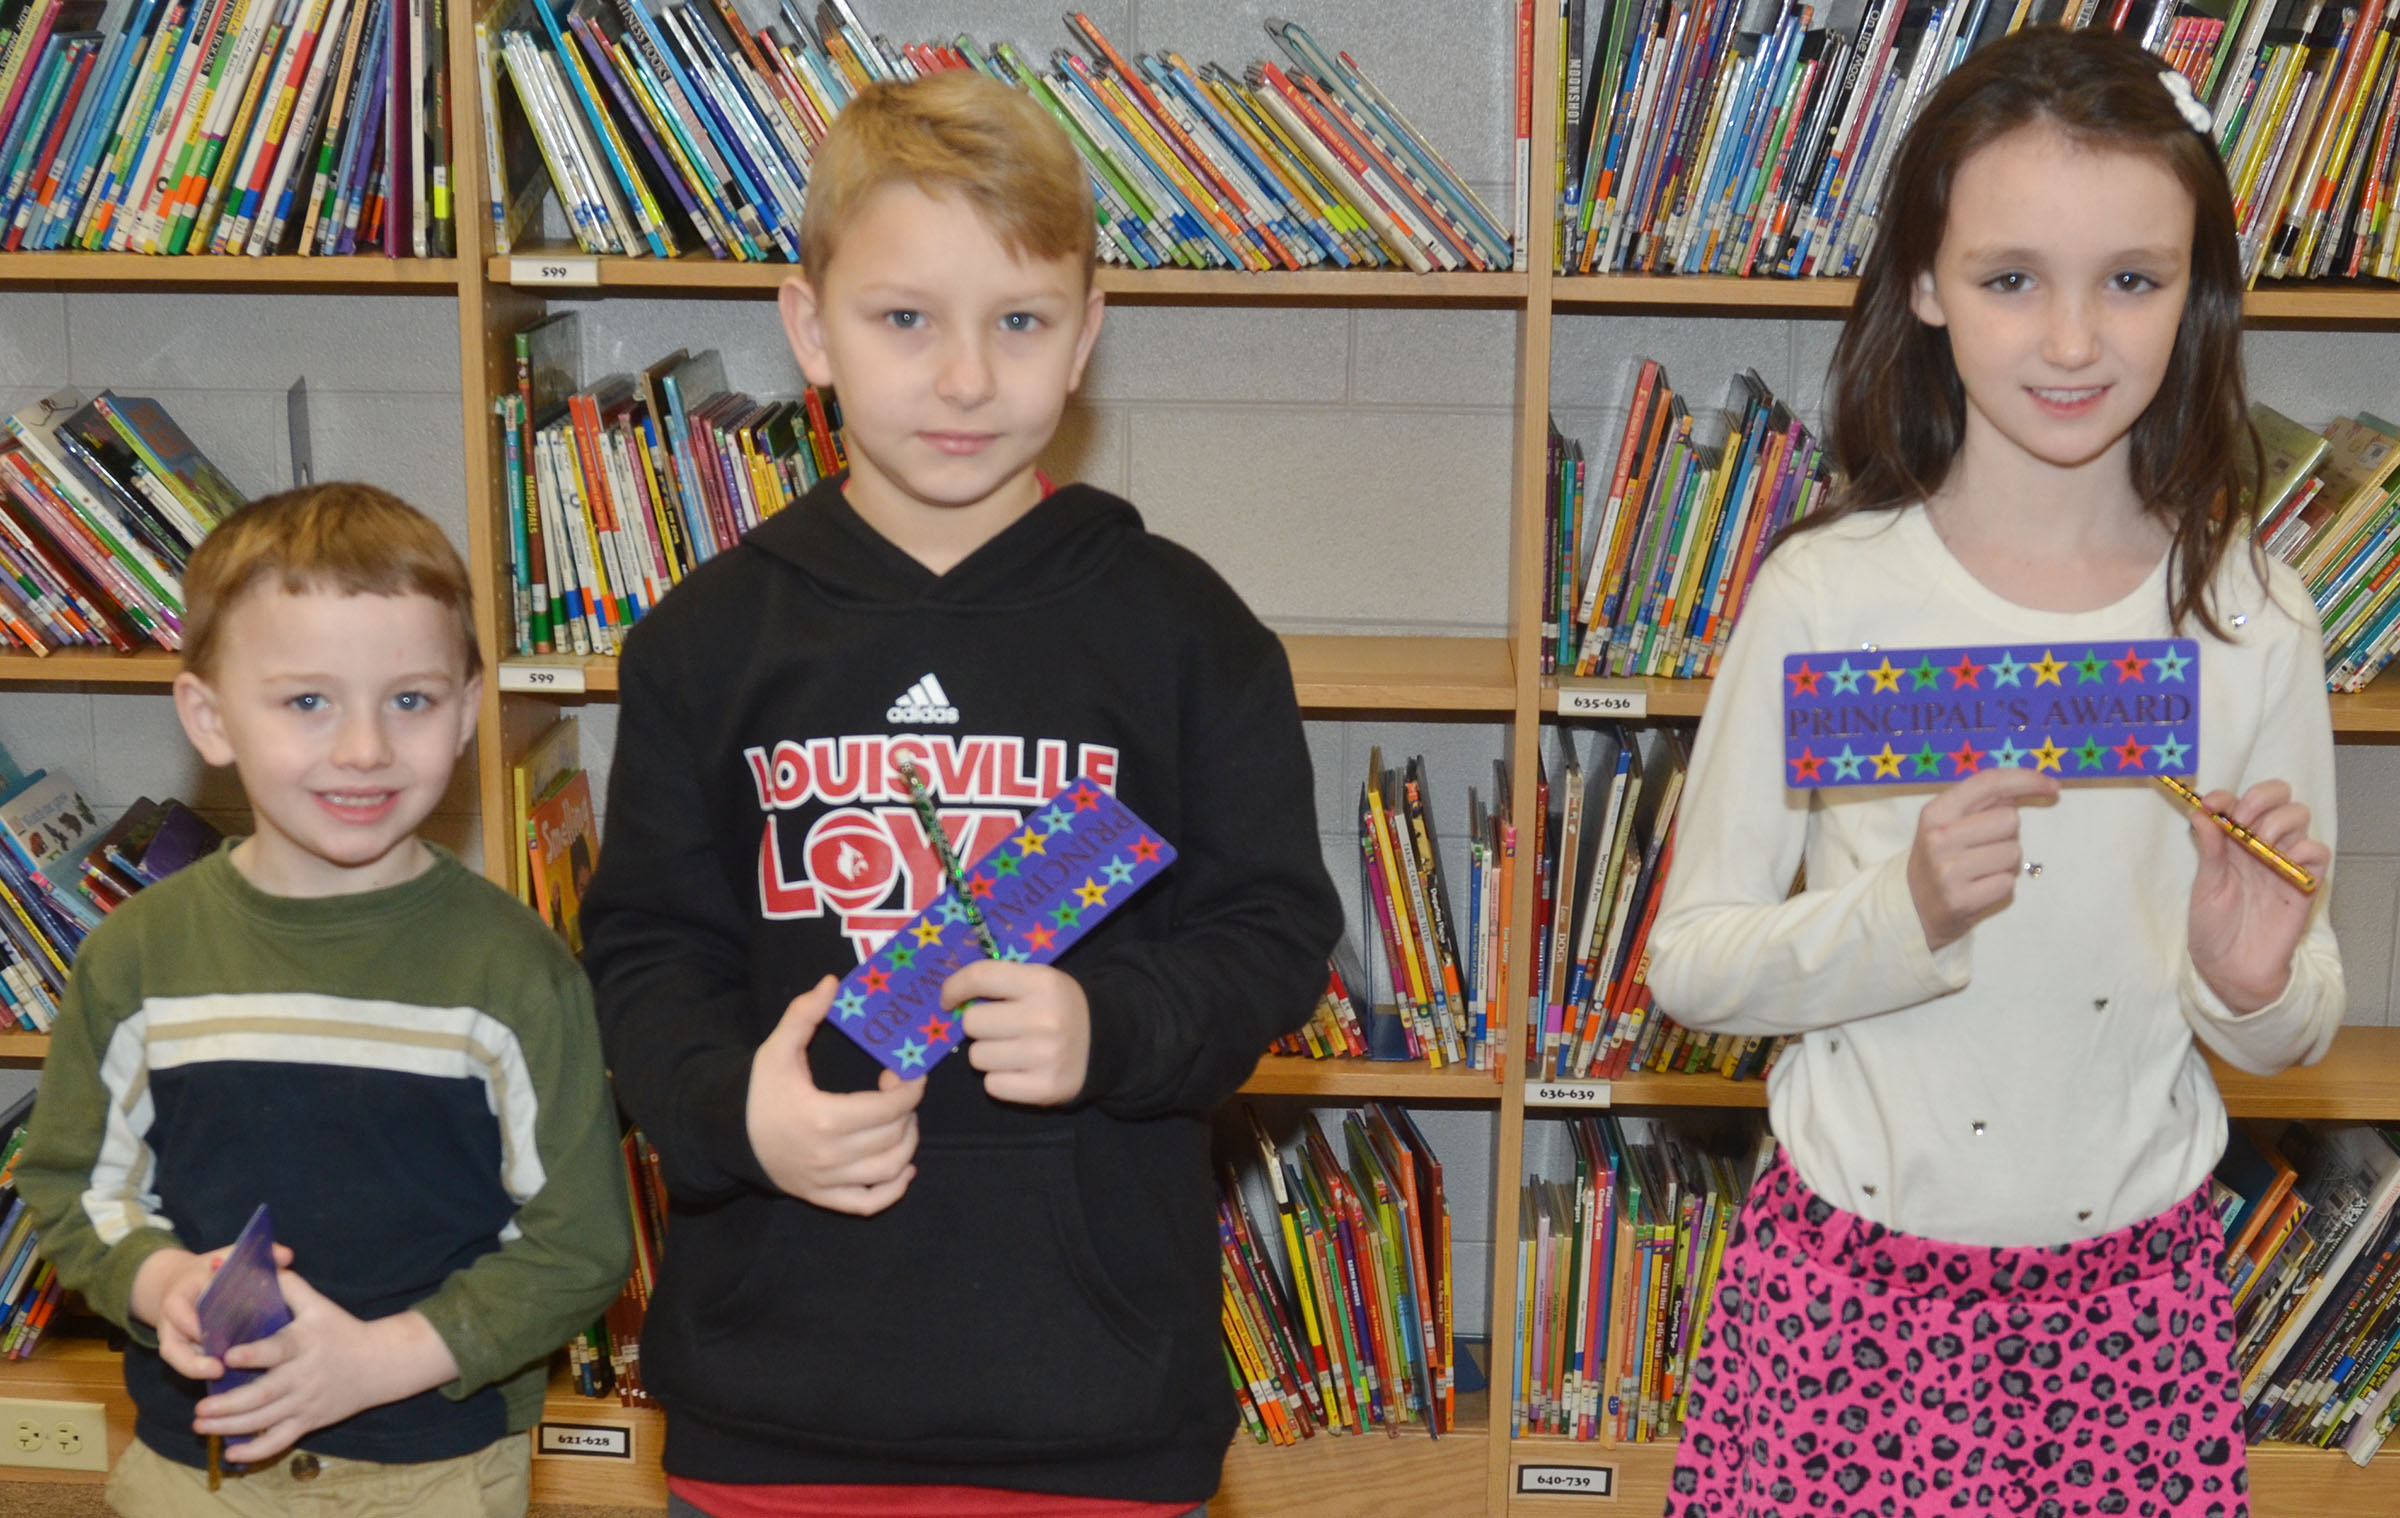 From left are kindergartener Ronnie Allen, second-grader Mason Davis and third-grader Paige Ritchie. Absent from the photo is first-grader Shlyan Dunn.